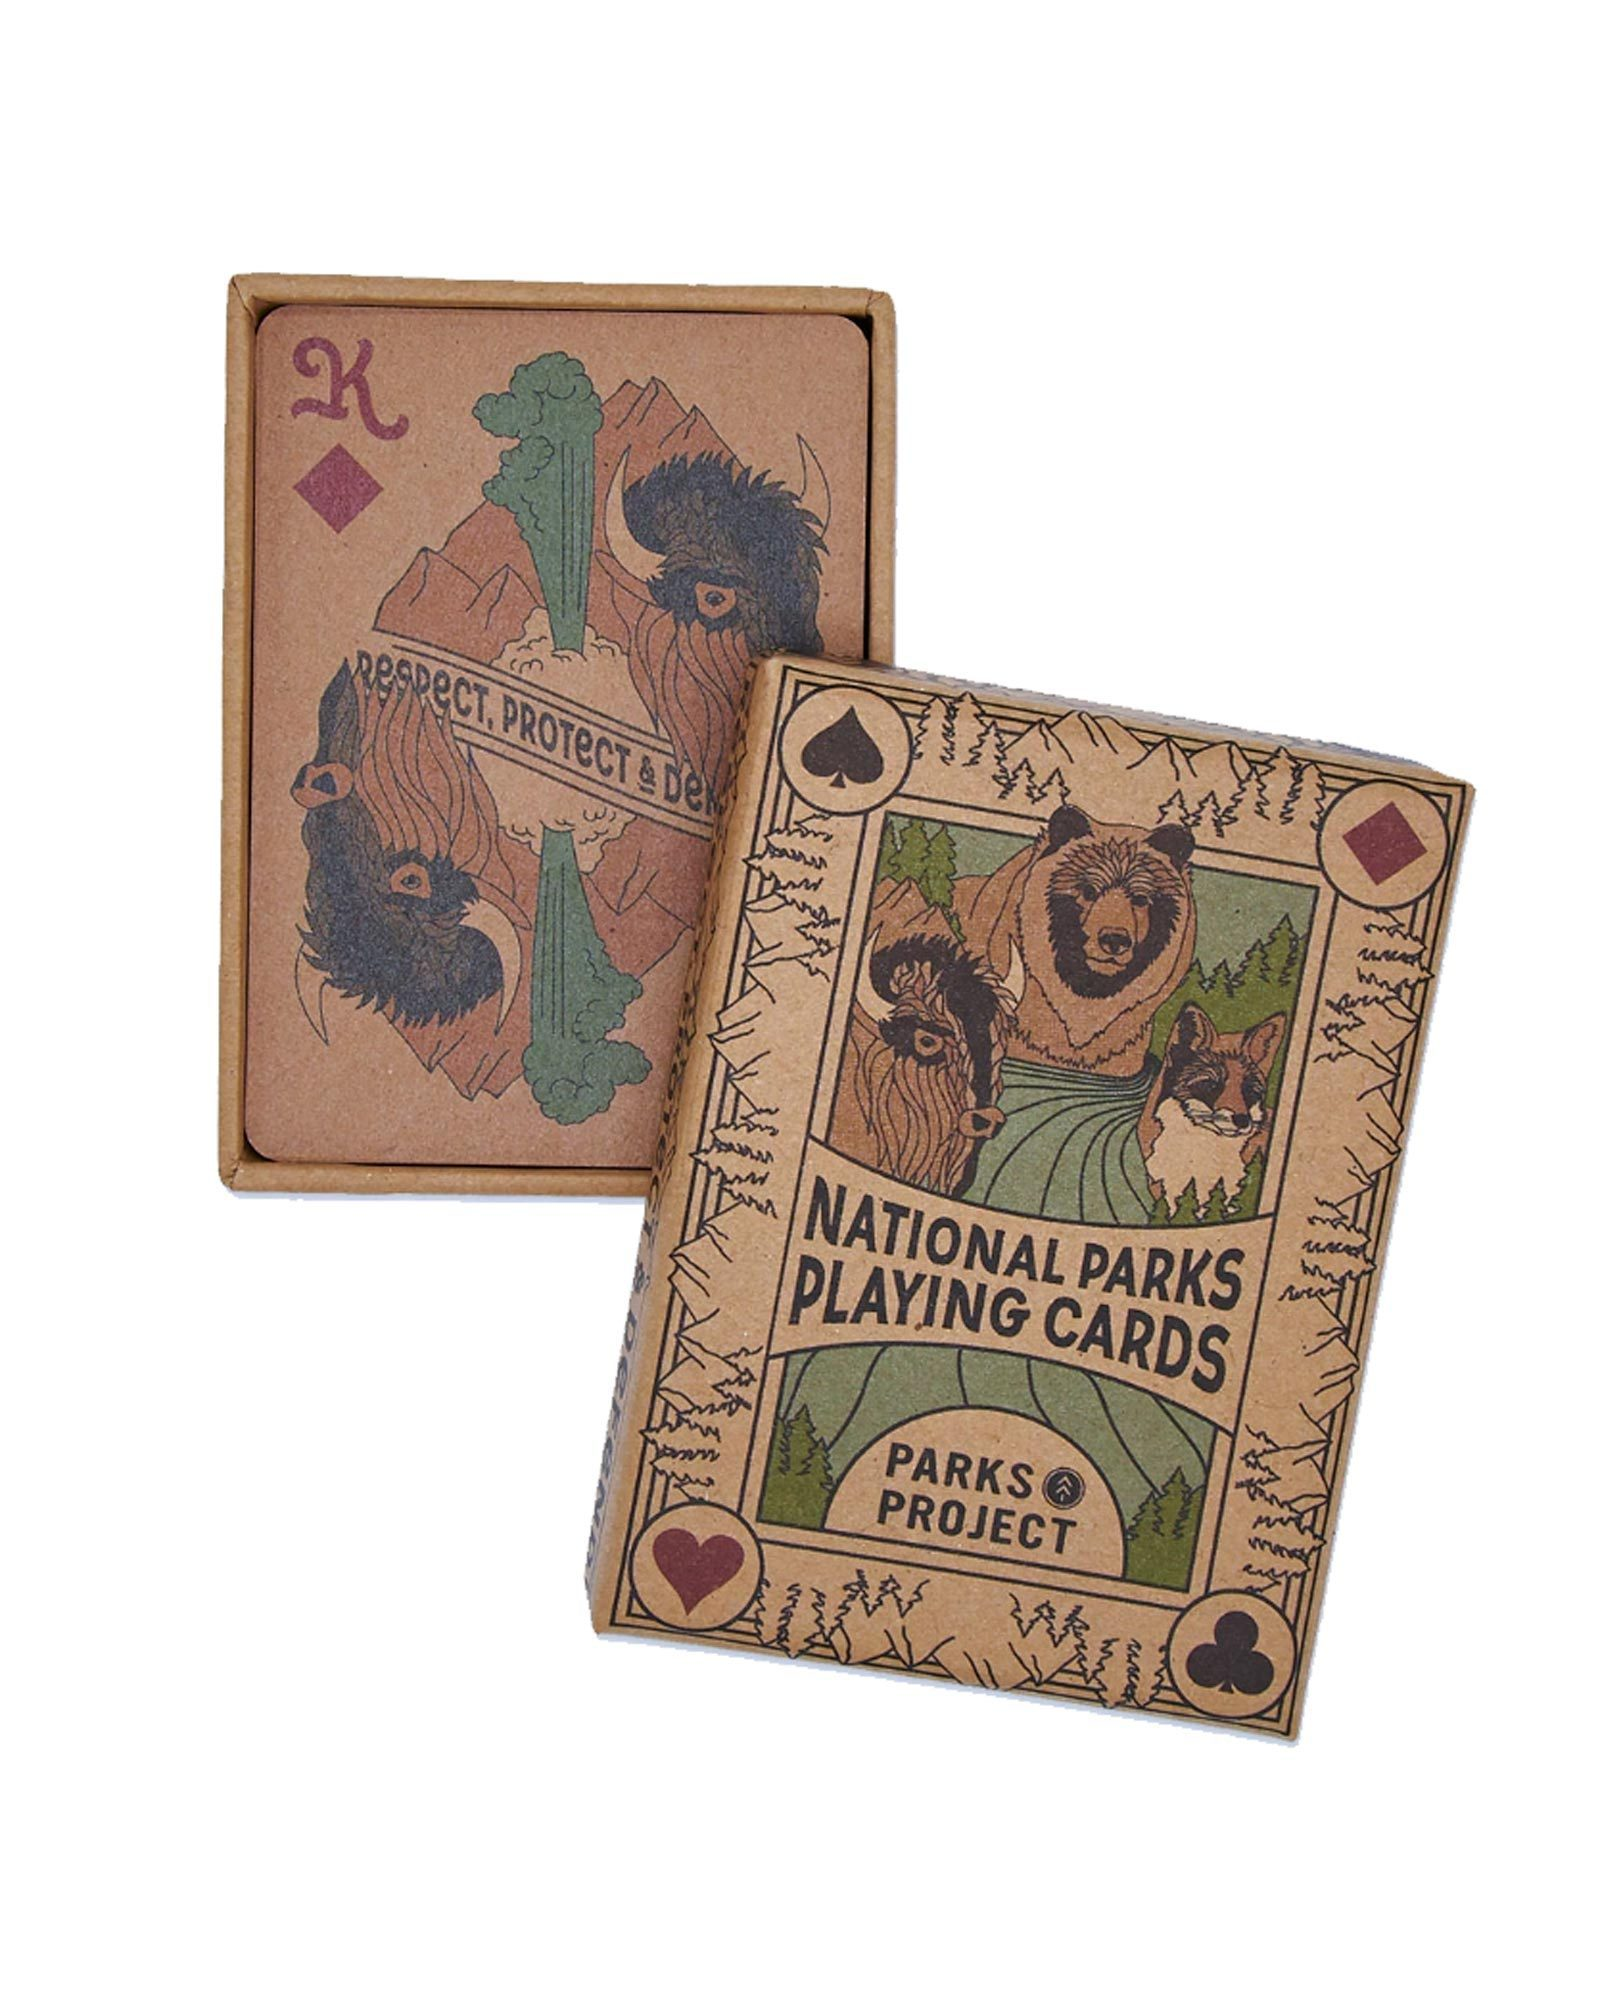 Holiday Gift Guide for National Park Lovers - Playing Cards